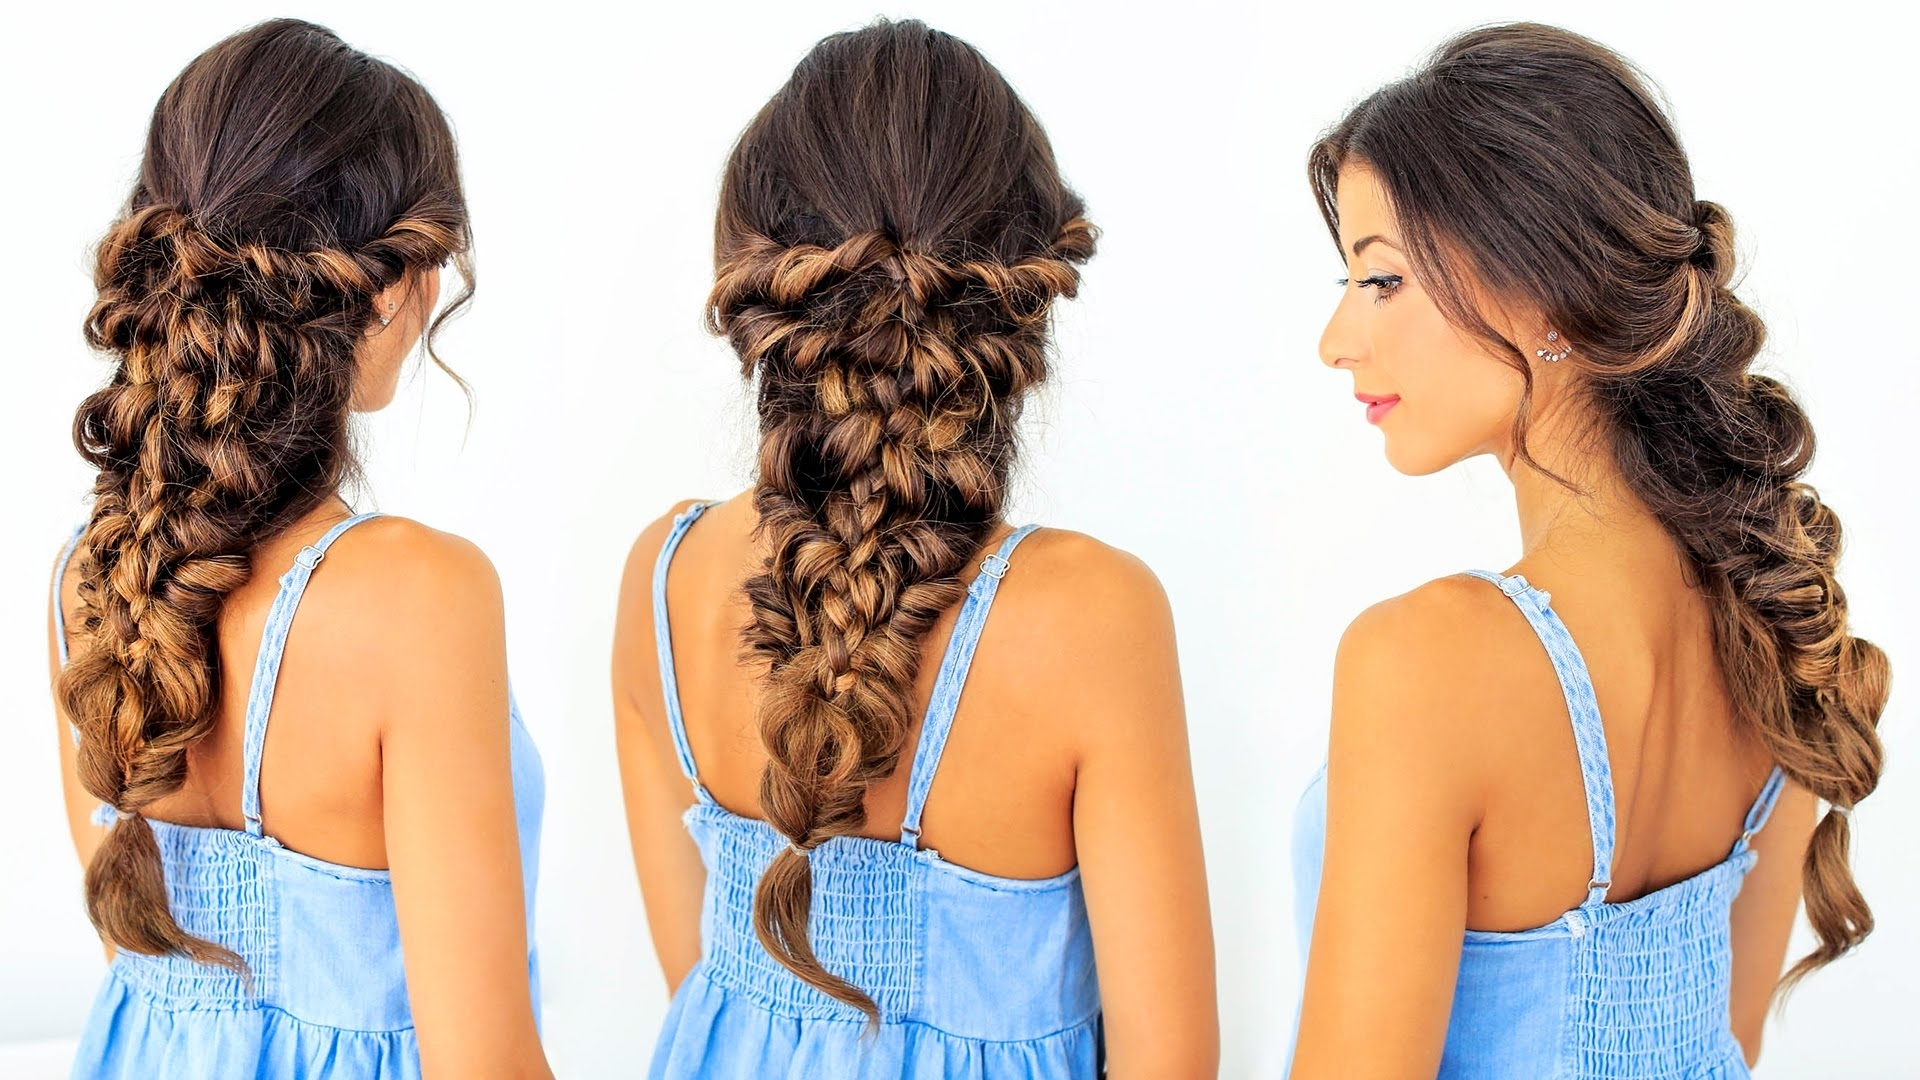 Most Up To Date Mermaid Braid Hairstyles Intended For How To: Mermaid Braid Hair Tutorial (View 3 of 15)